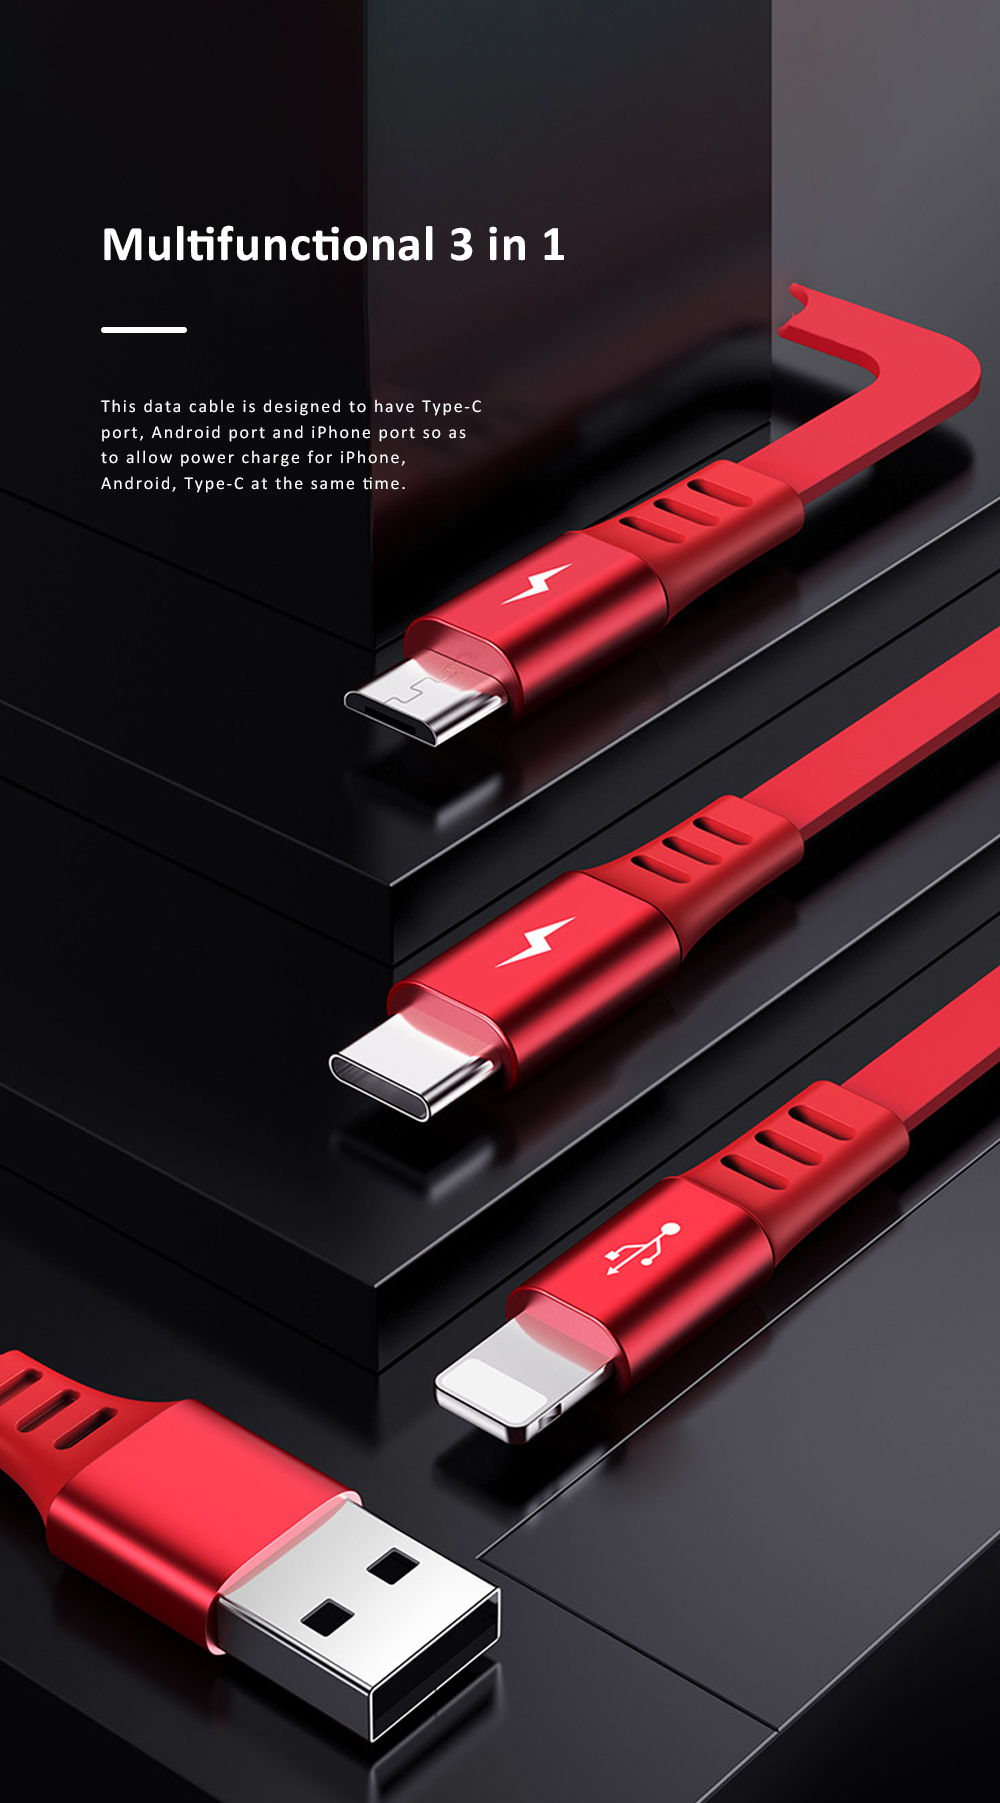 PISEN Three-in-one Telescopic Data Cable Quick Charge Type-c Data Line Compatible with Android, iPhone Multifunctional Power Line 2